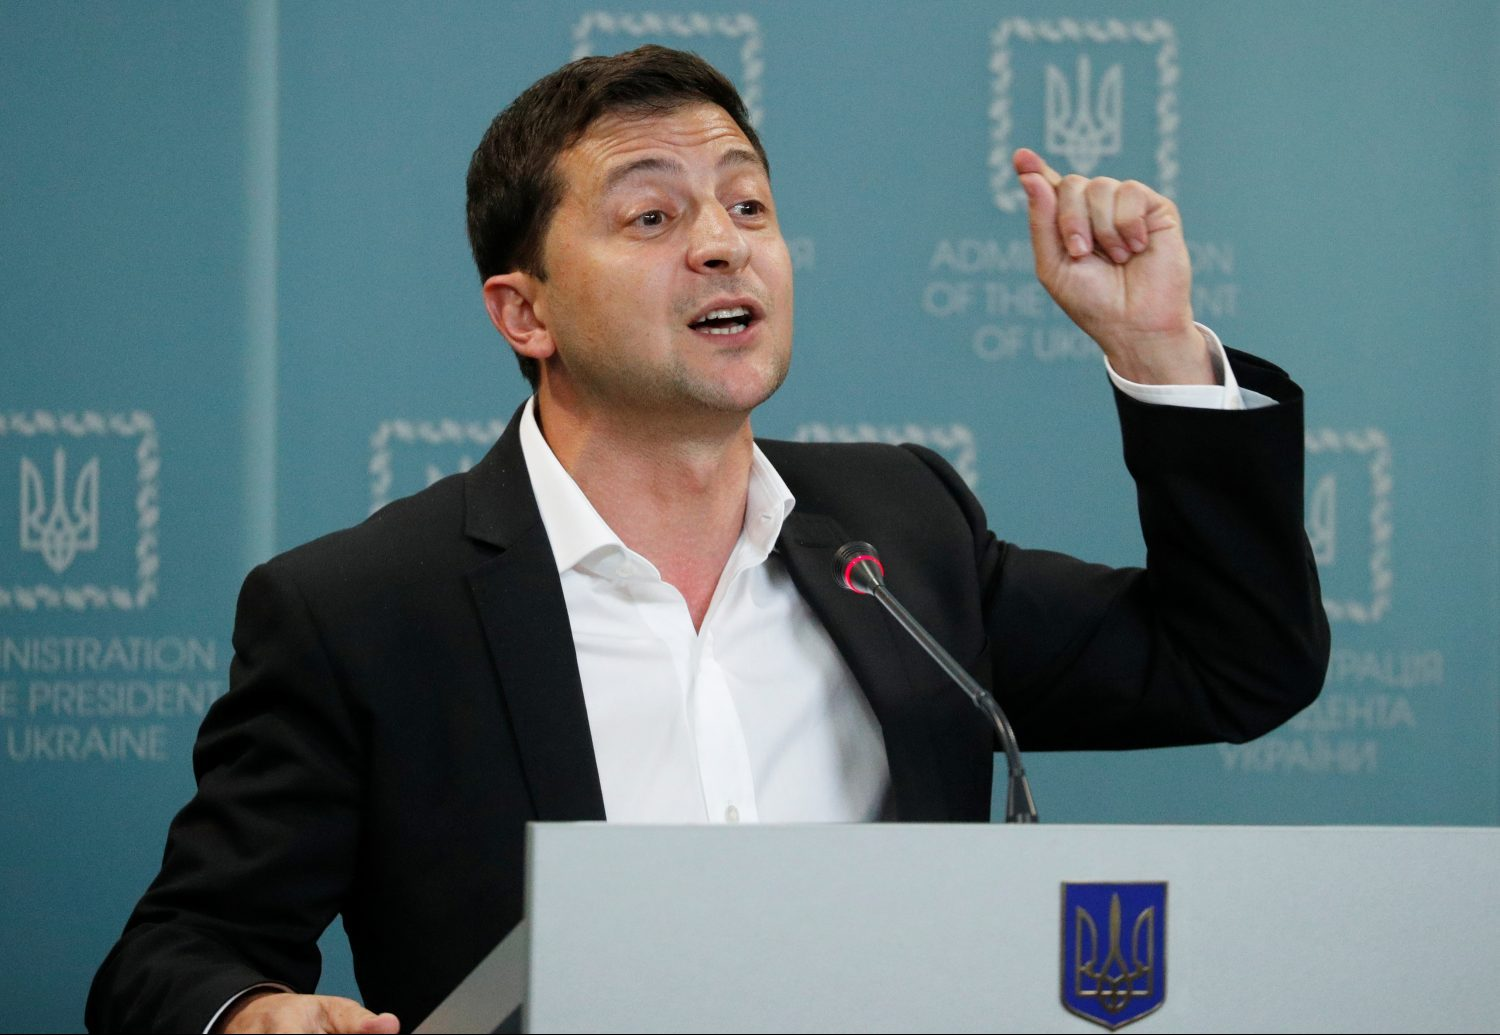 Mr. and Mrs. Zelenskyy trip up on gender roles again